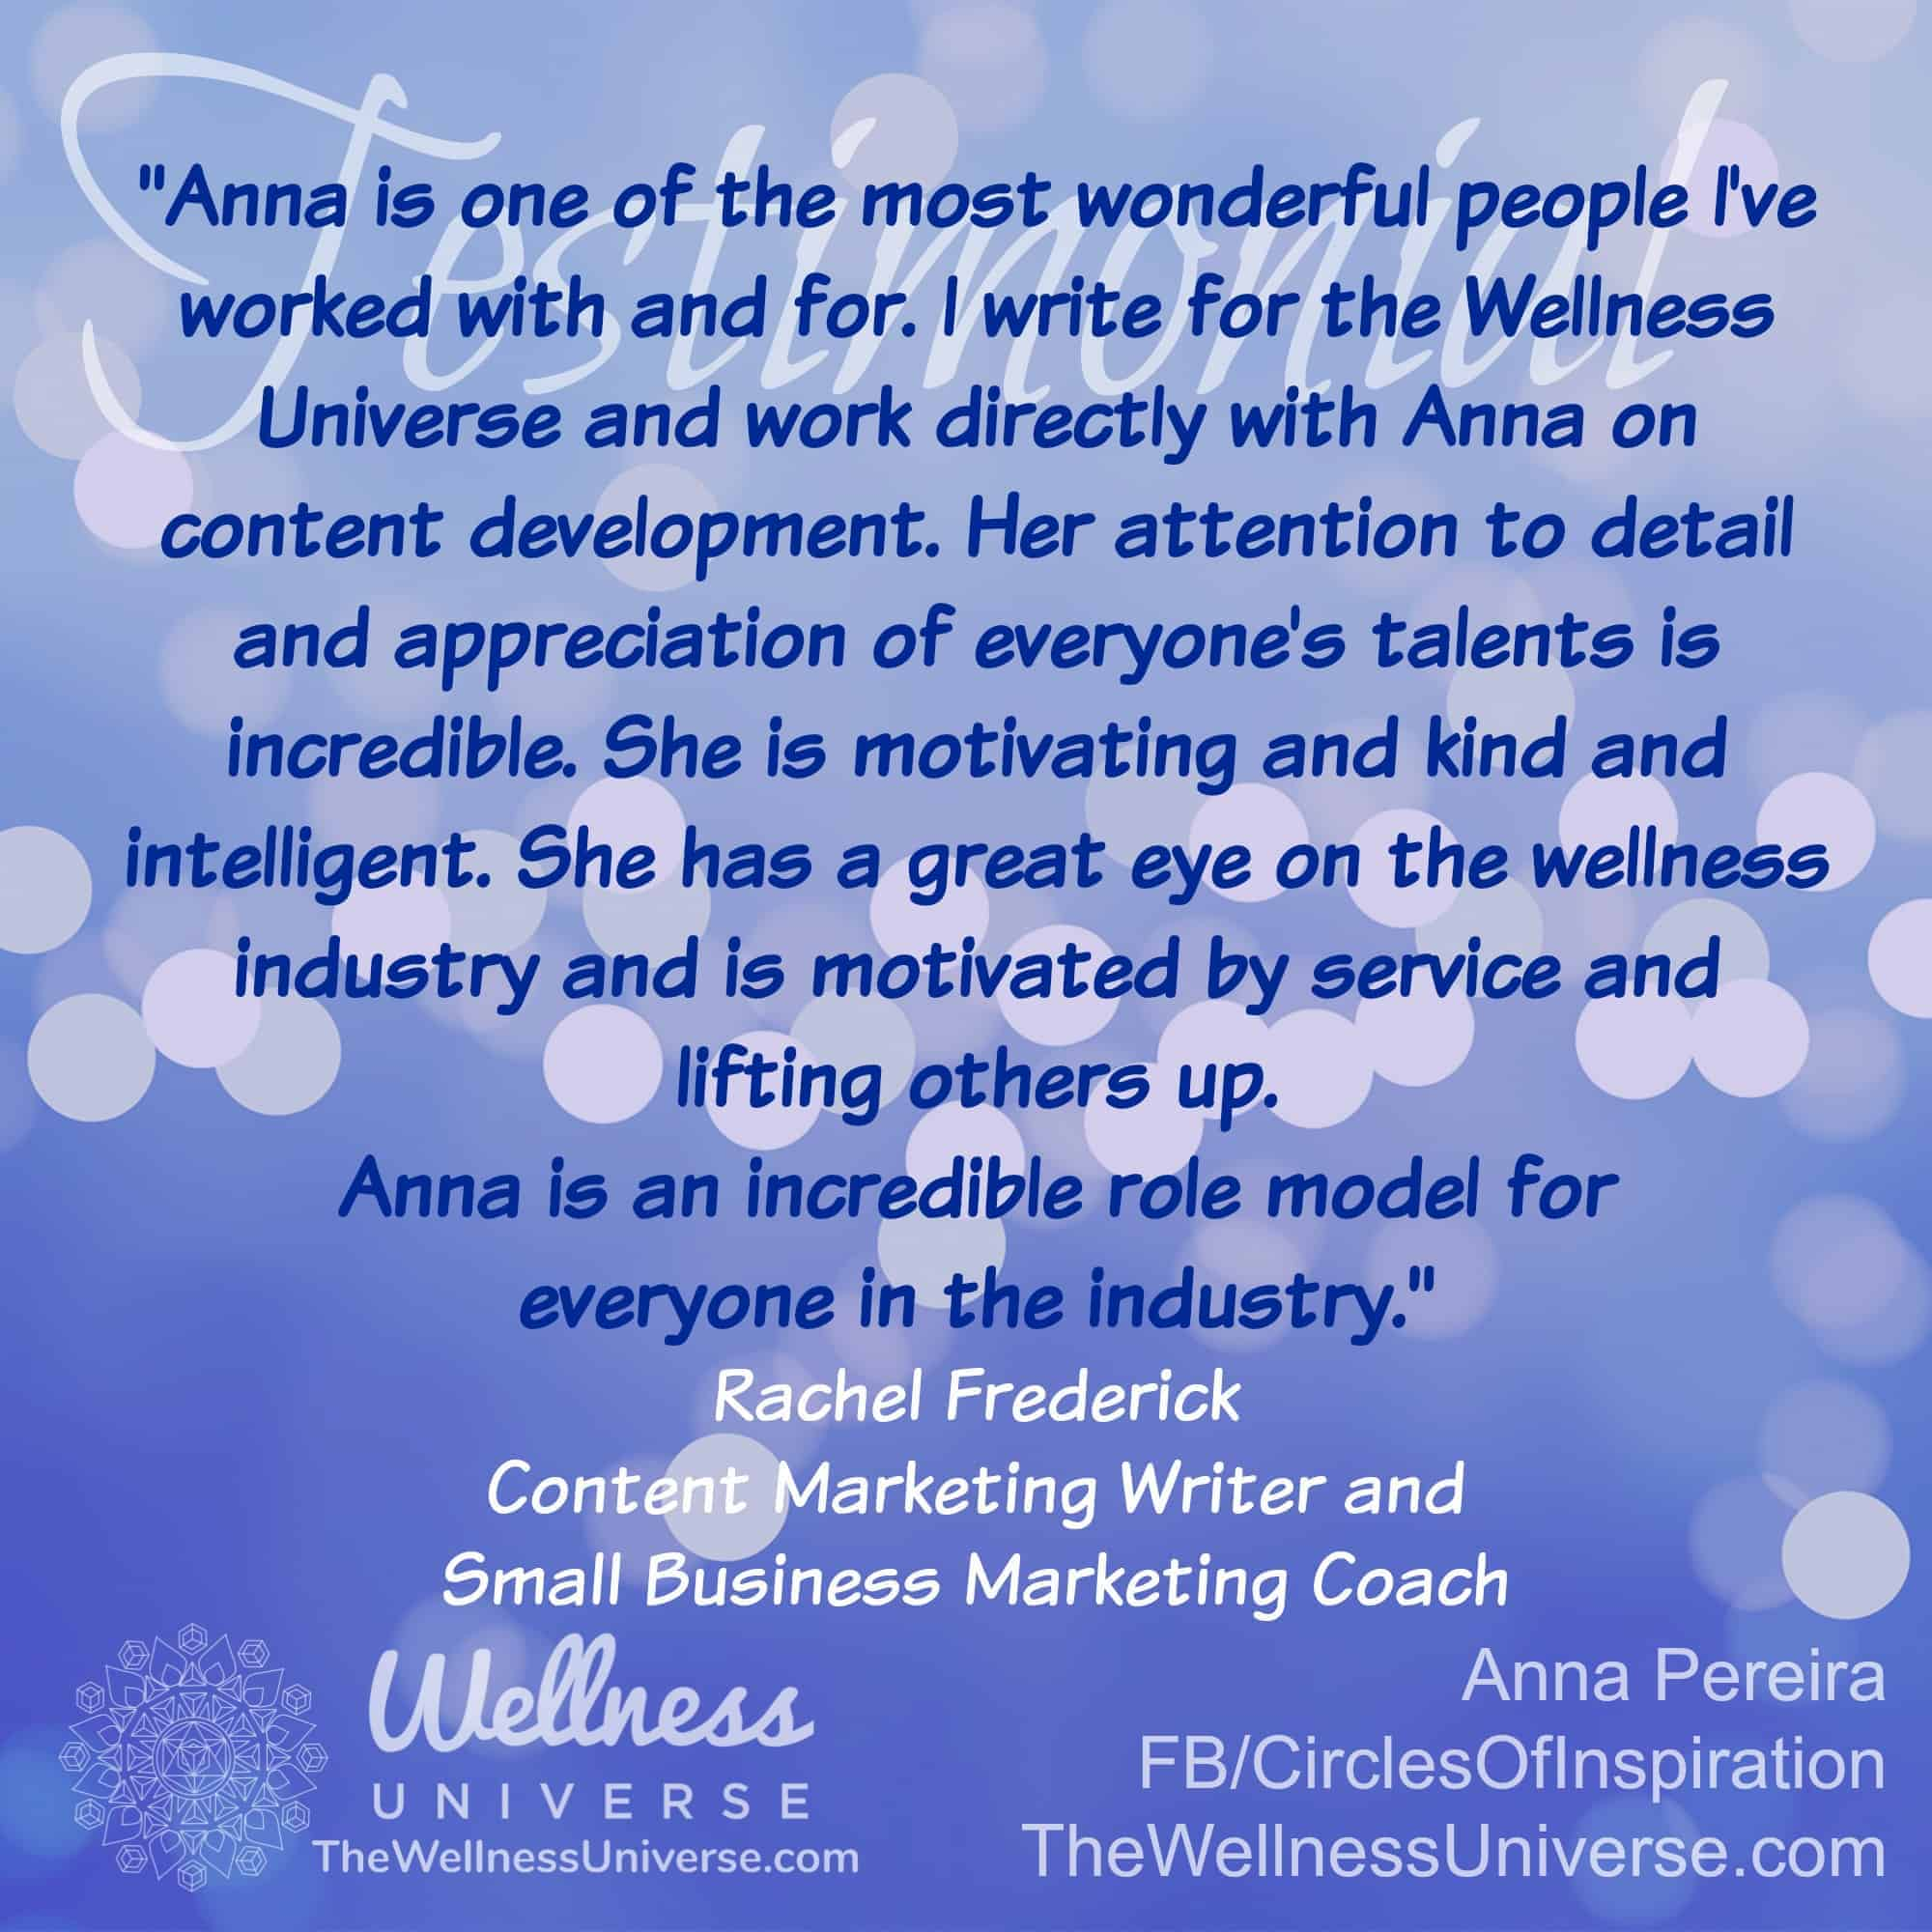 <3 Blessed & Grateful to have these amazing reviews from WU World-Changers @rachelfrederick @